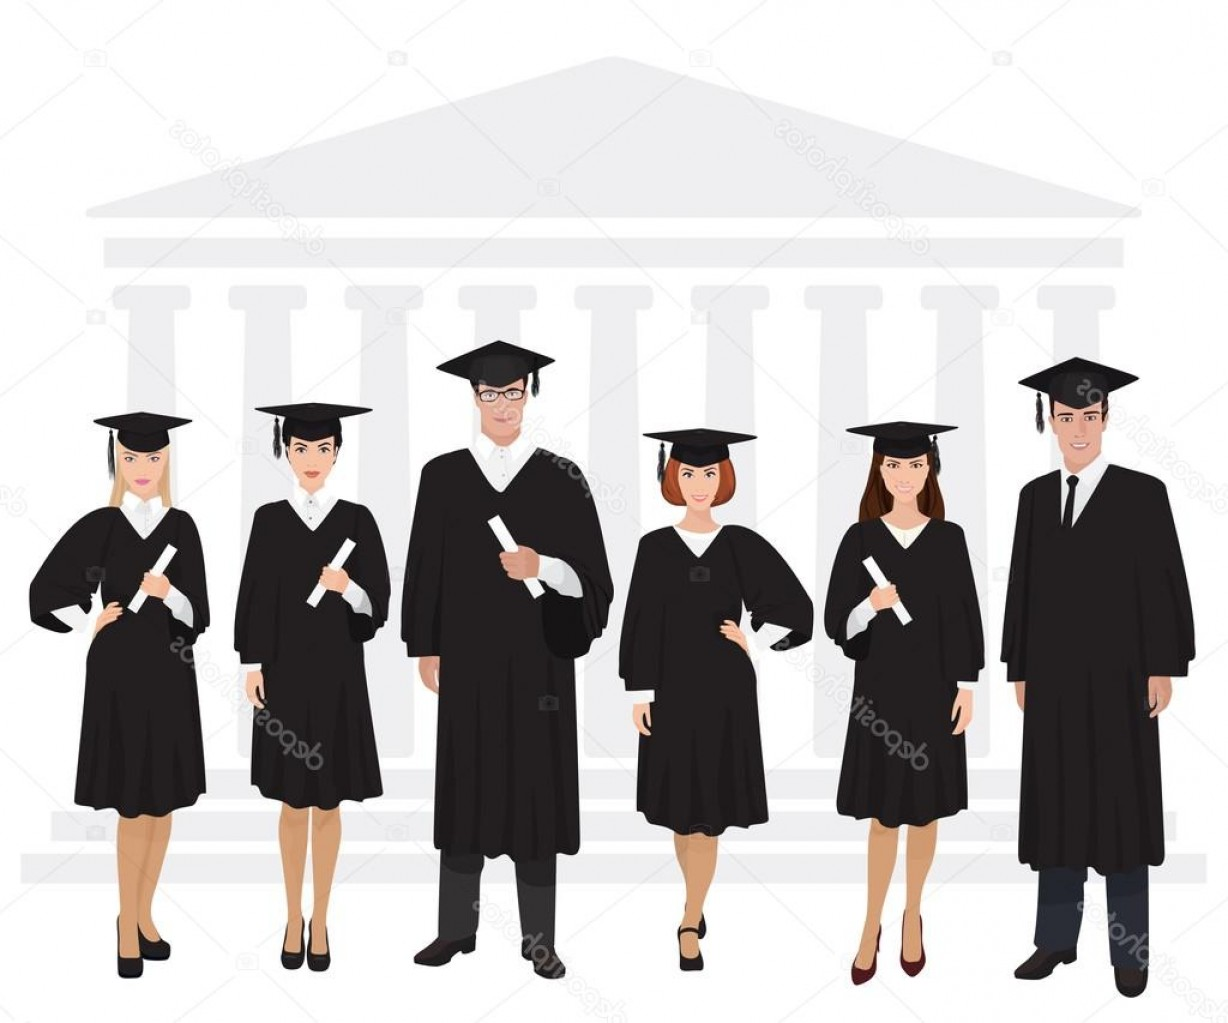 Standing Diploma Vector: Stock Illustration Young Guys And Girls Graduates